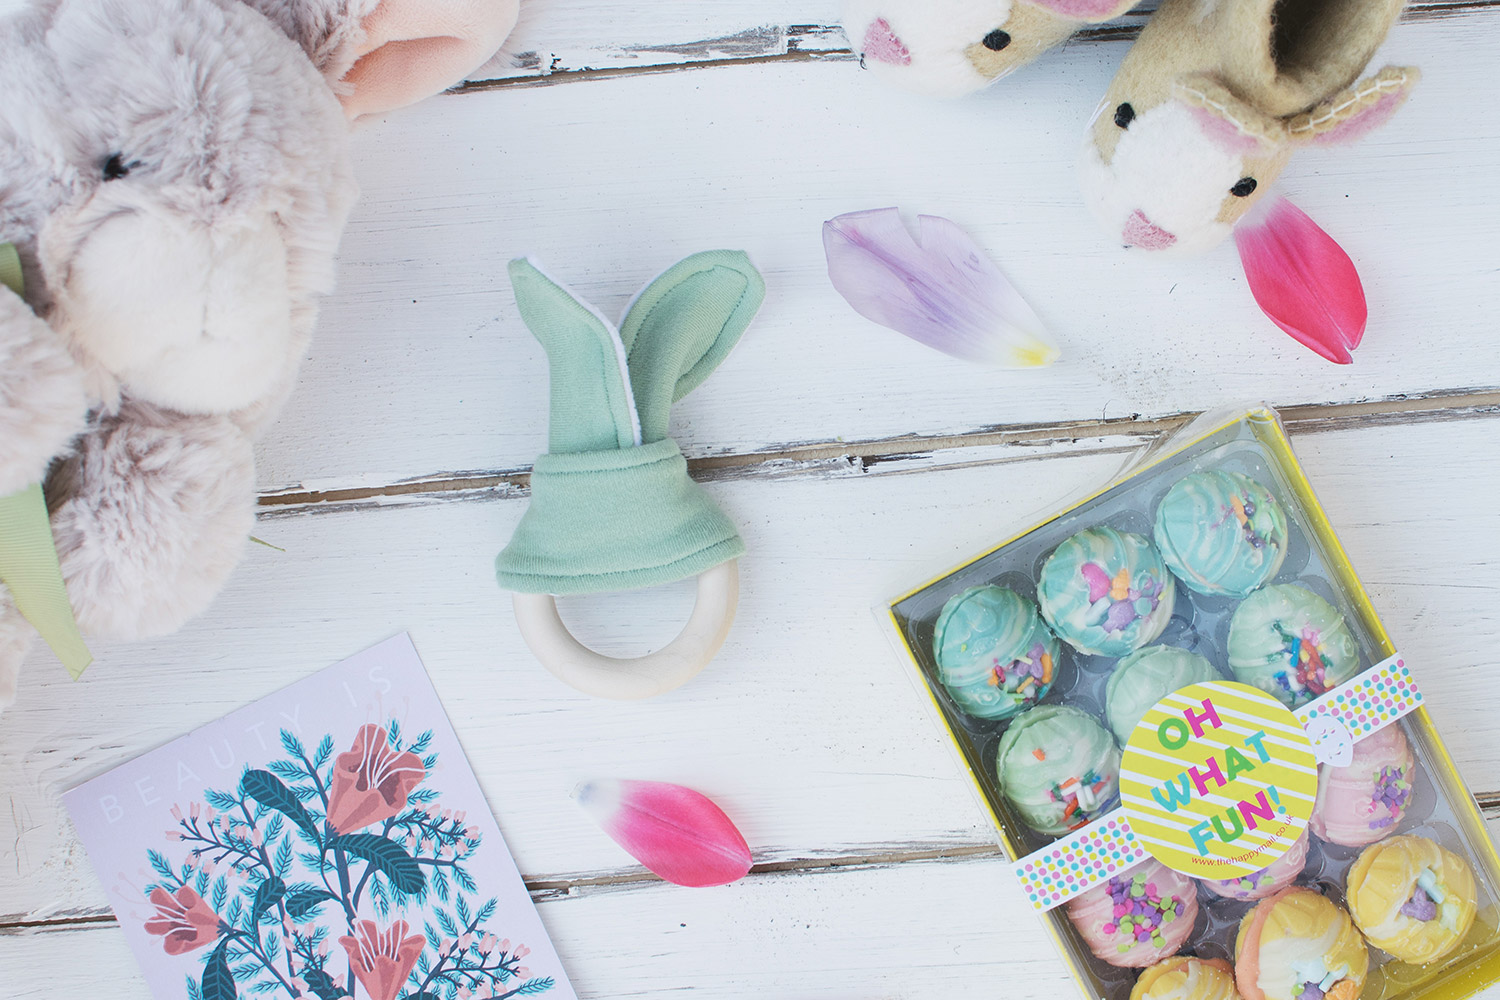 Happy Easter! Fancy more chocolate? (Of course you do) - Giveaway of an Easter hamper featuring a Blue Bunny Boutique wooden teething ring, Happy Mail funfetti chocolate eggs, Sew Heart Felt bunny slippers and Harrods soft toy bunny rabbit